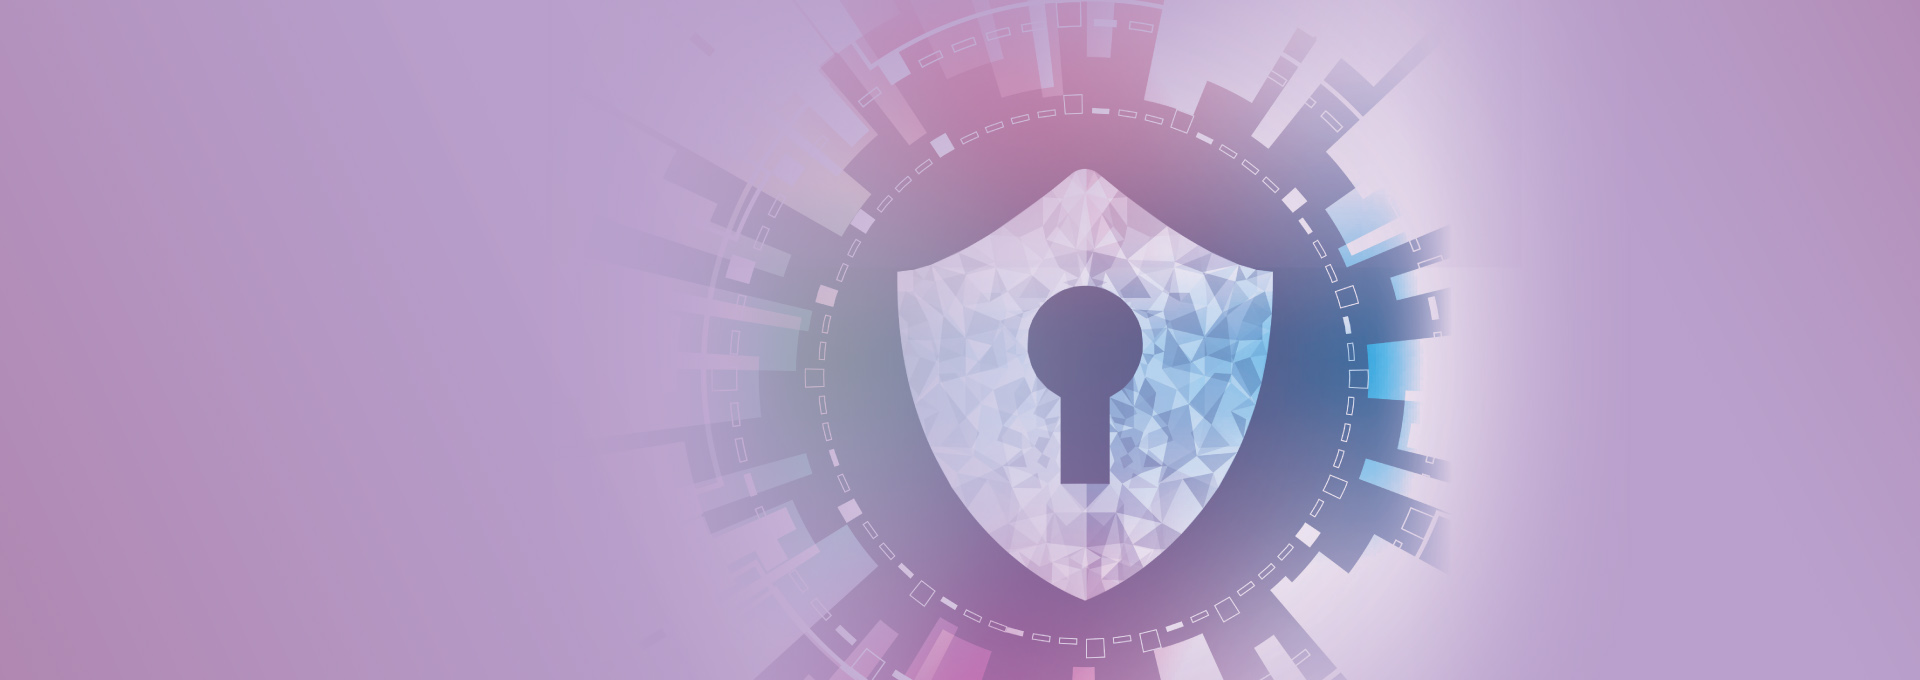 Approaches to Data Integrity Assurance: 2021 Workshop